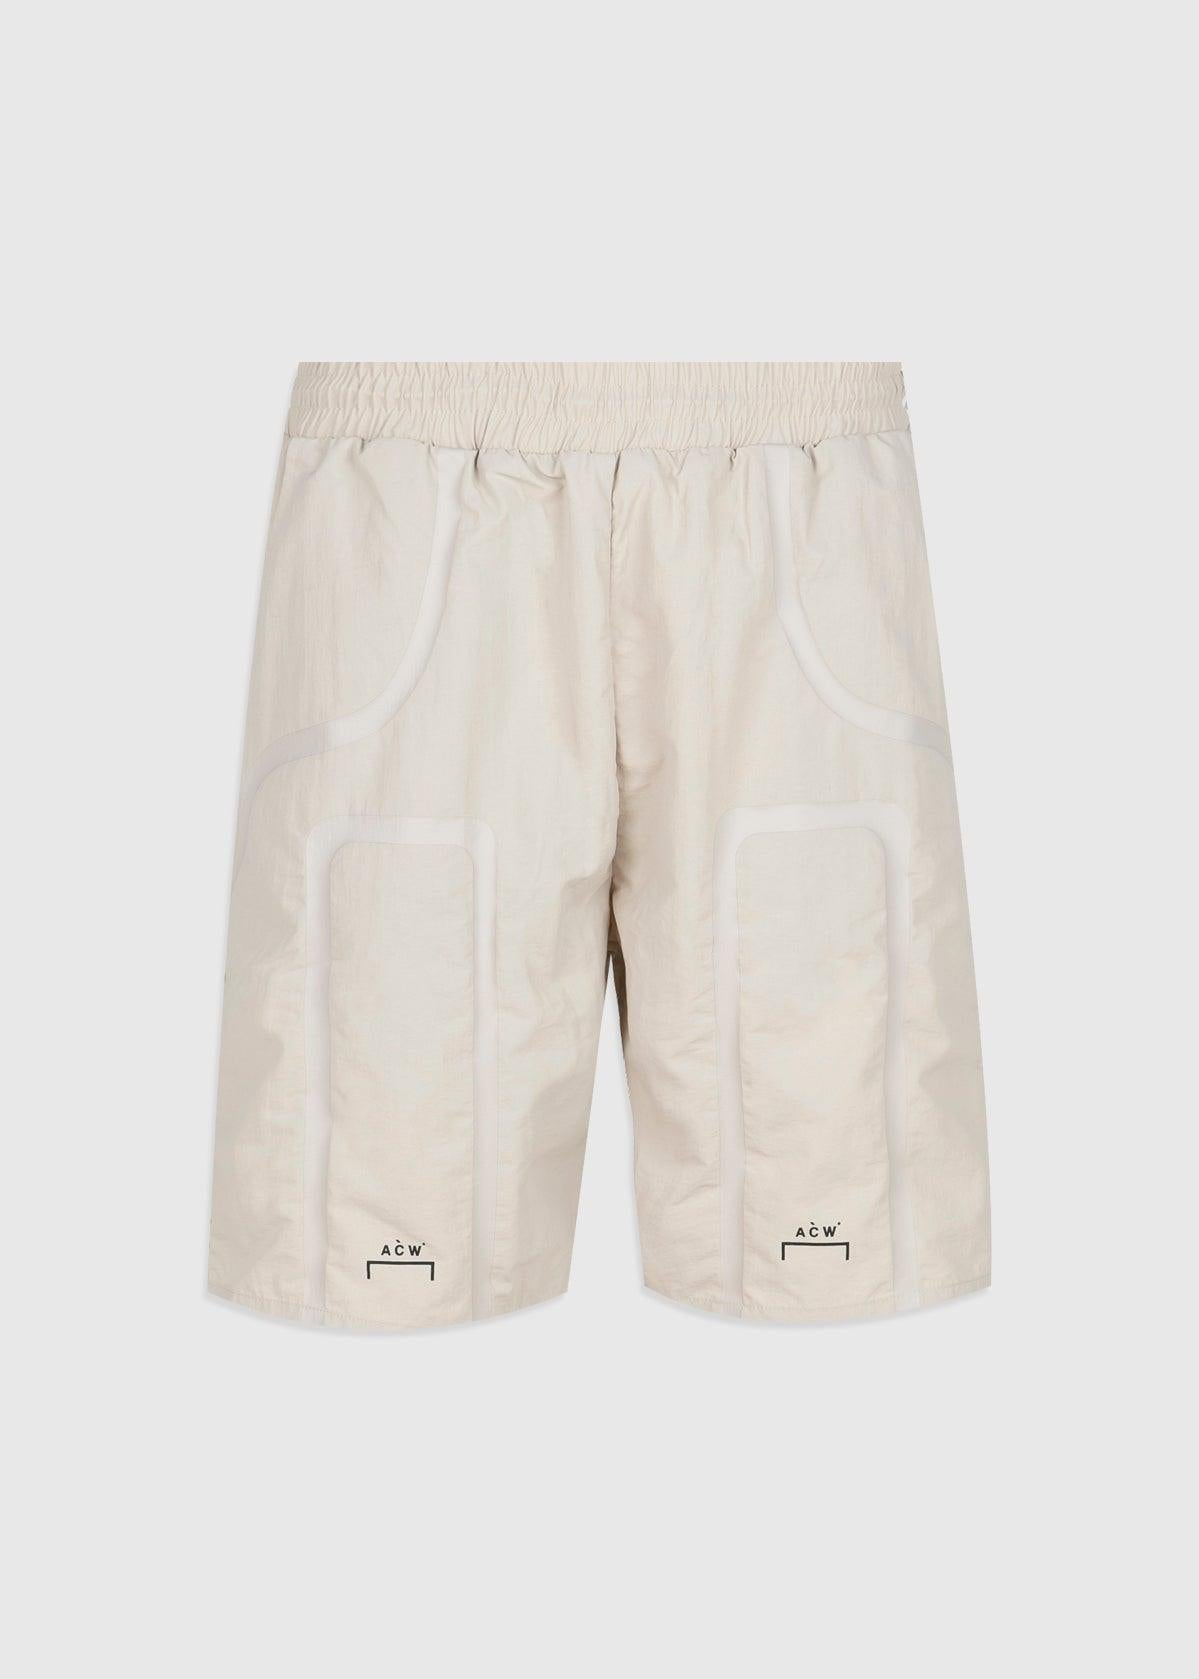 A-COLD-WALL*: TAPED TRACK SHORTS